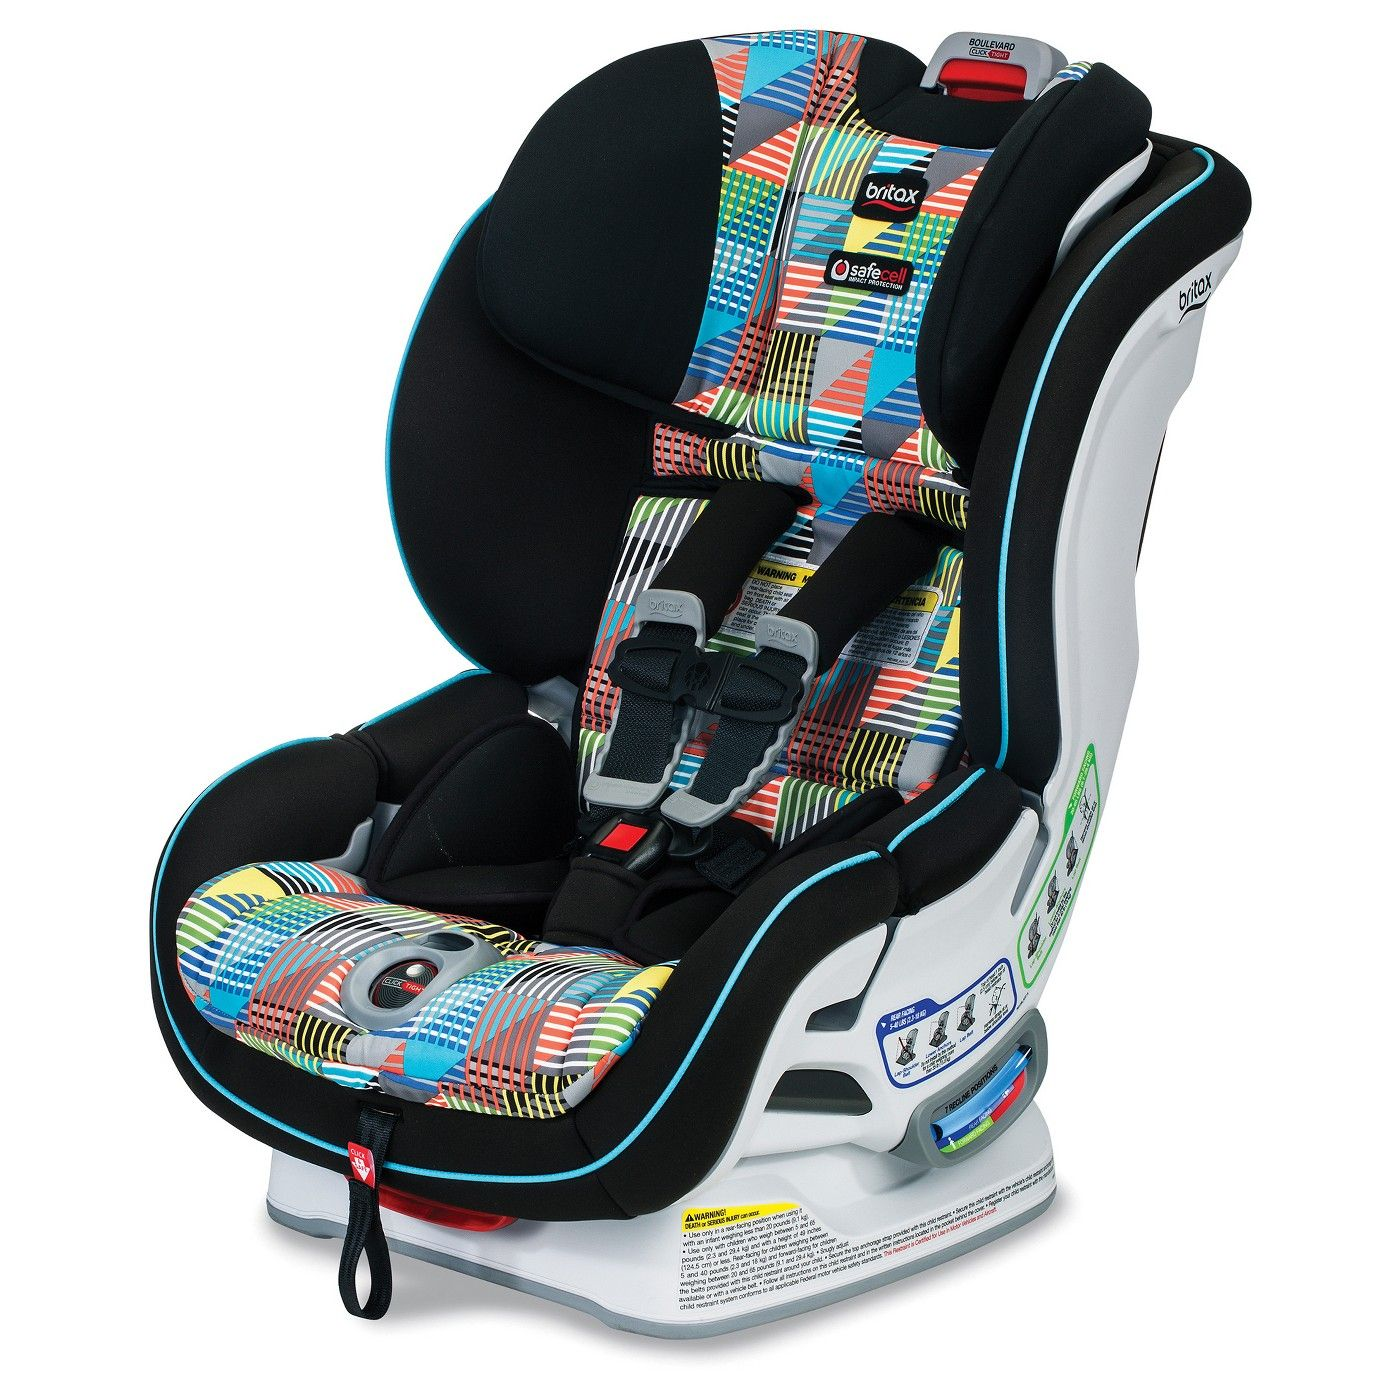 graco extend to fit car seat front facing installation